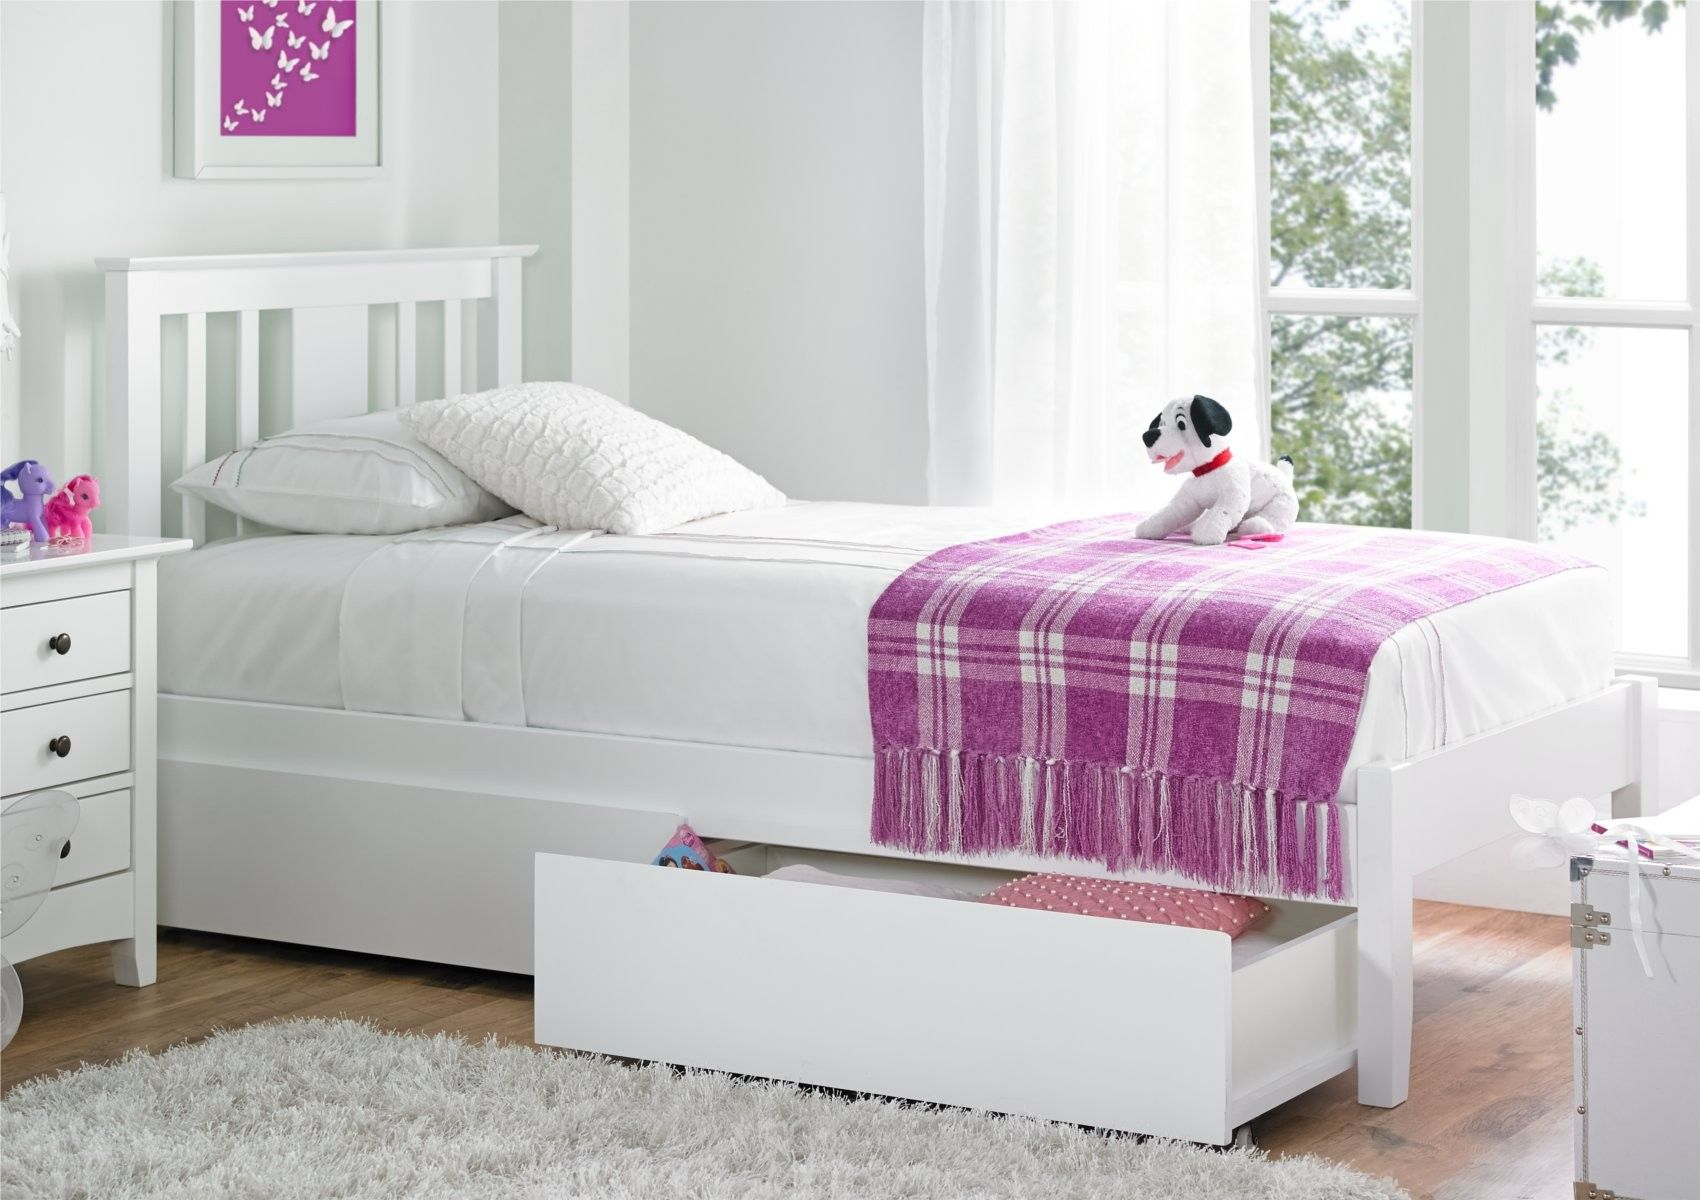 Malmo White Solo Wooden Bed Frame - Painted Wood - Wooden Beds ...